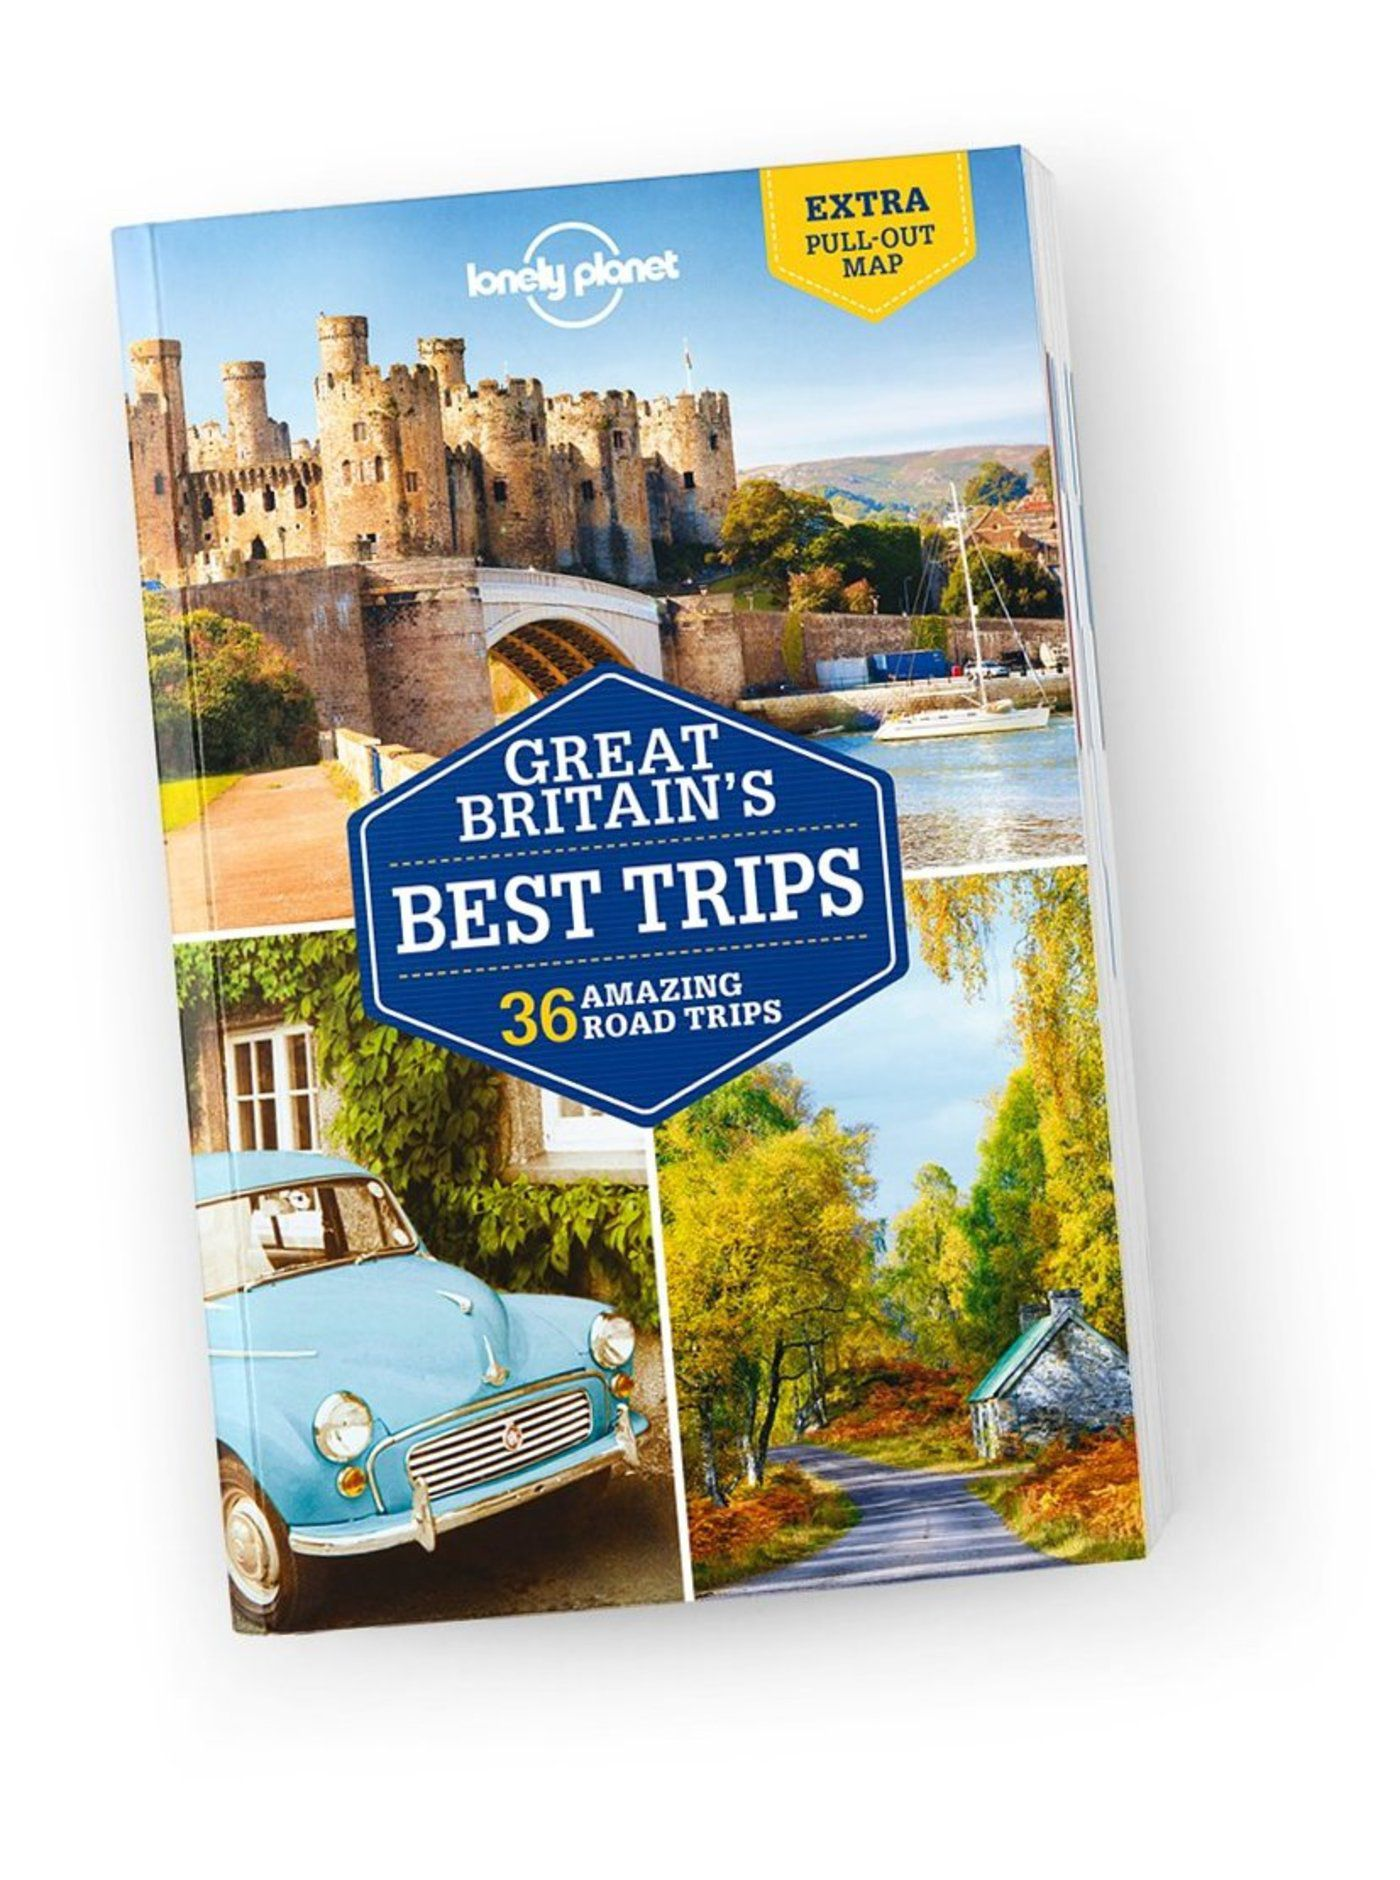 Great Britain's Best Trips - Classic Trips (PDF Chapter), 1st Edition Mar 2017 by Lonely Planet 9781786573278002